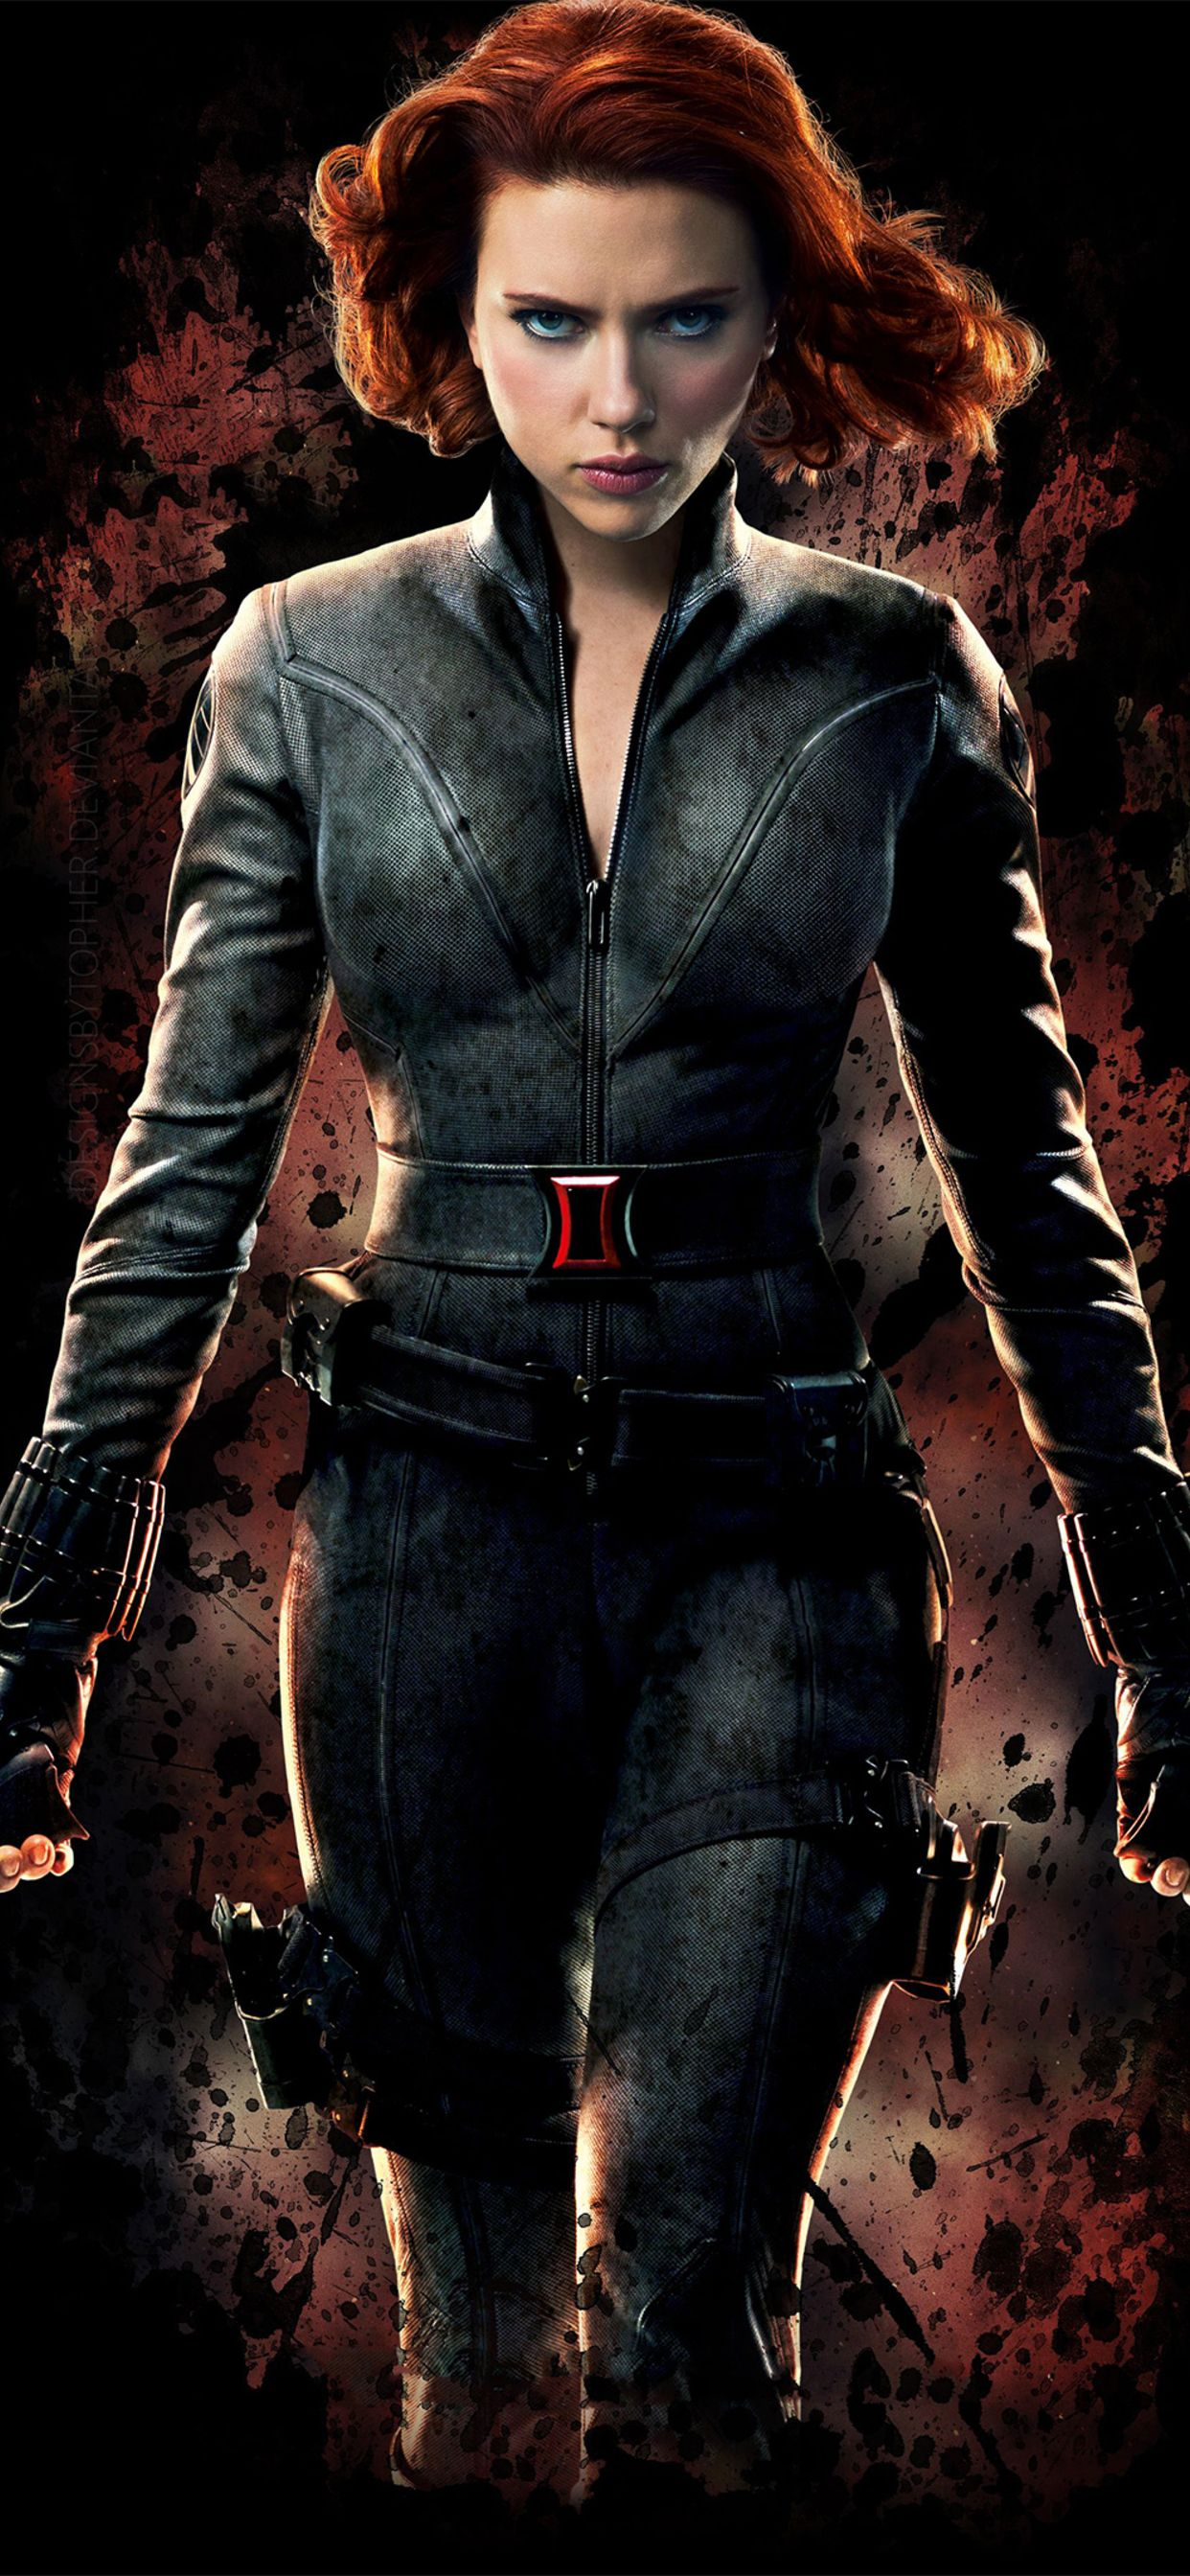 1242x2688 Black Widow 4k New Iphone Xs Max Hd 4k Wallpapers Images Backgrounds Photos And Pictures Black Widow Marvel Black Widow Avengers Black Widow